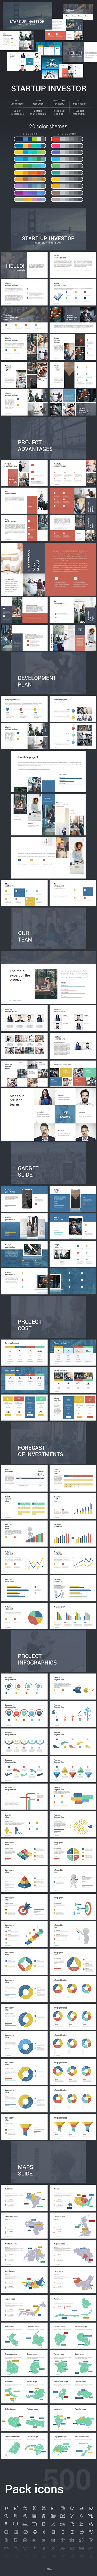 Startup Investor Pitch Deck PowerPoint Template - Business PowerPoint Templates